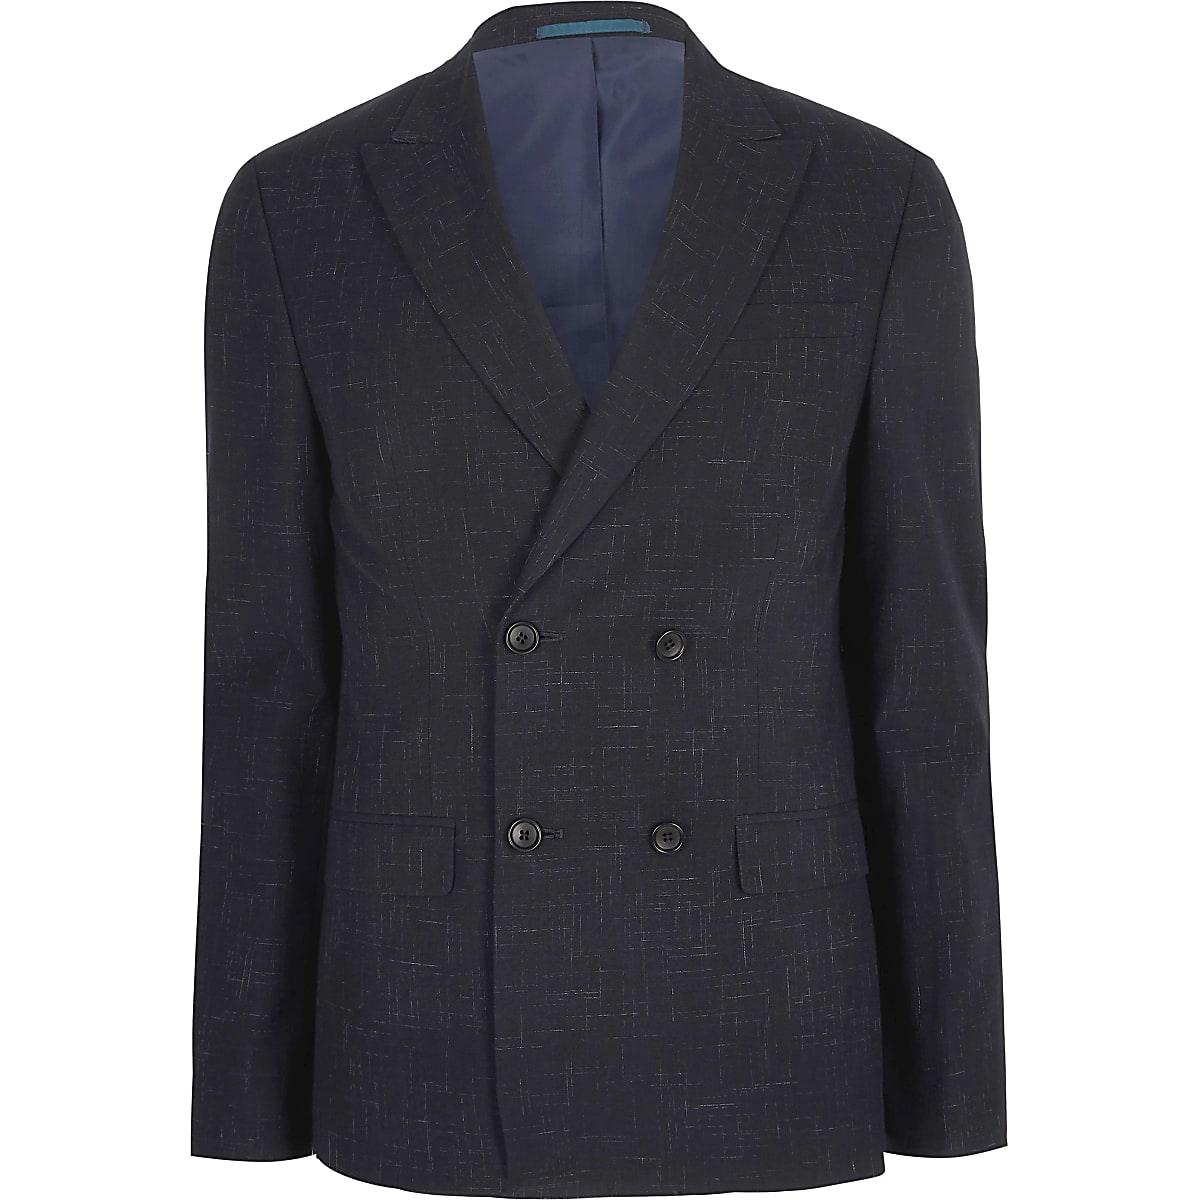 Navy skinny double breasted suit jacket